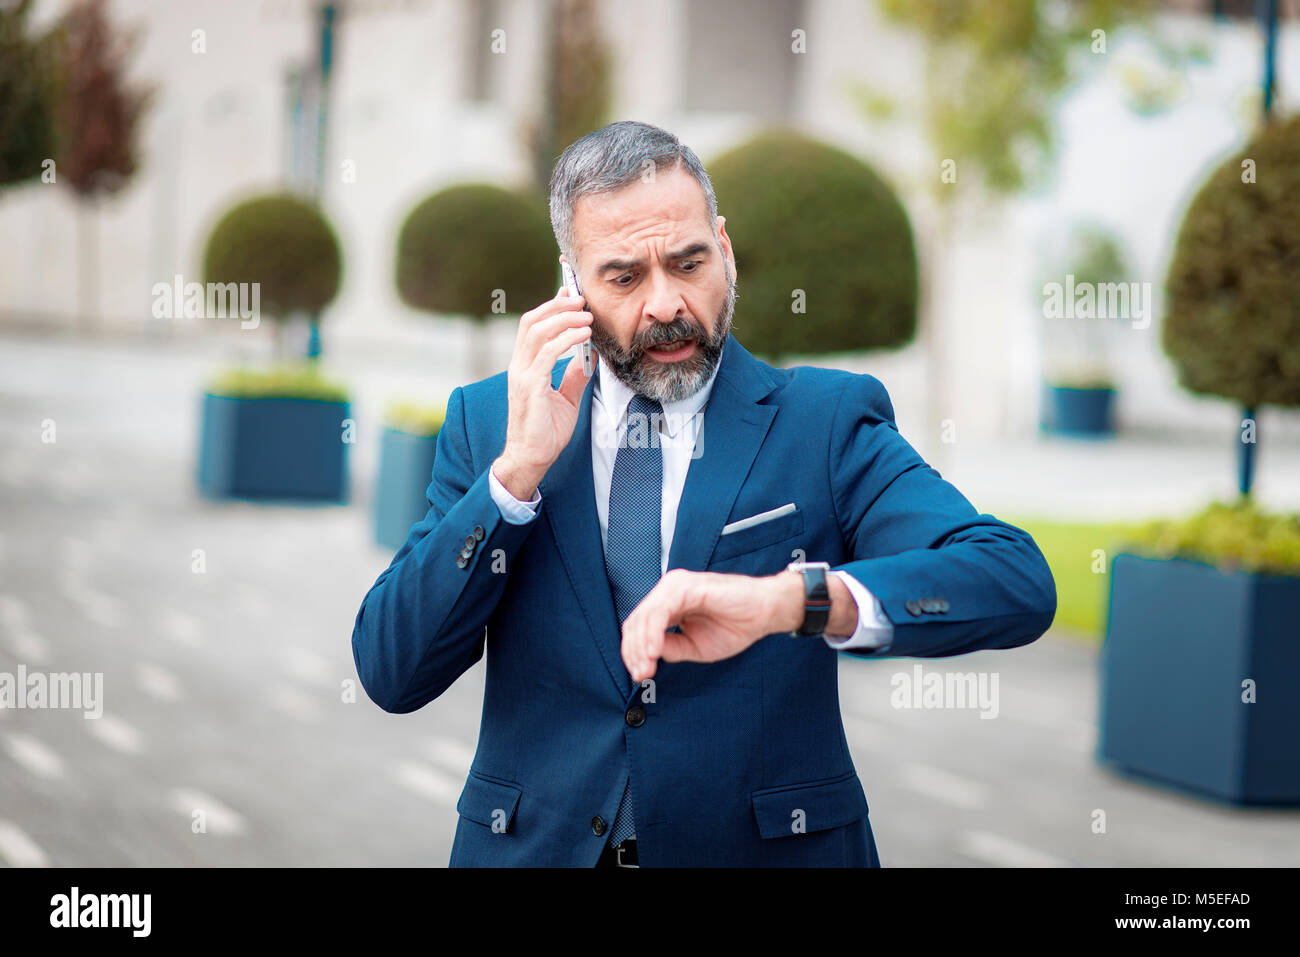 Senior mature business man shocked with the time, talking on his phone, expressing his fear - Stock Image